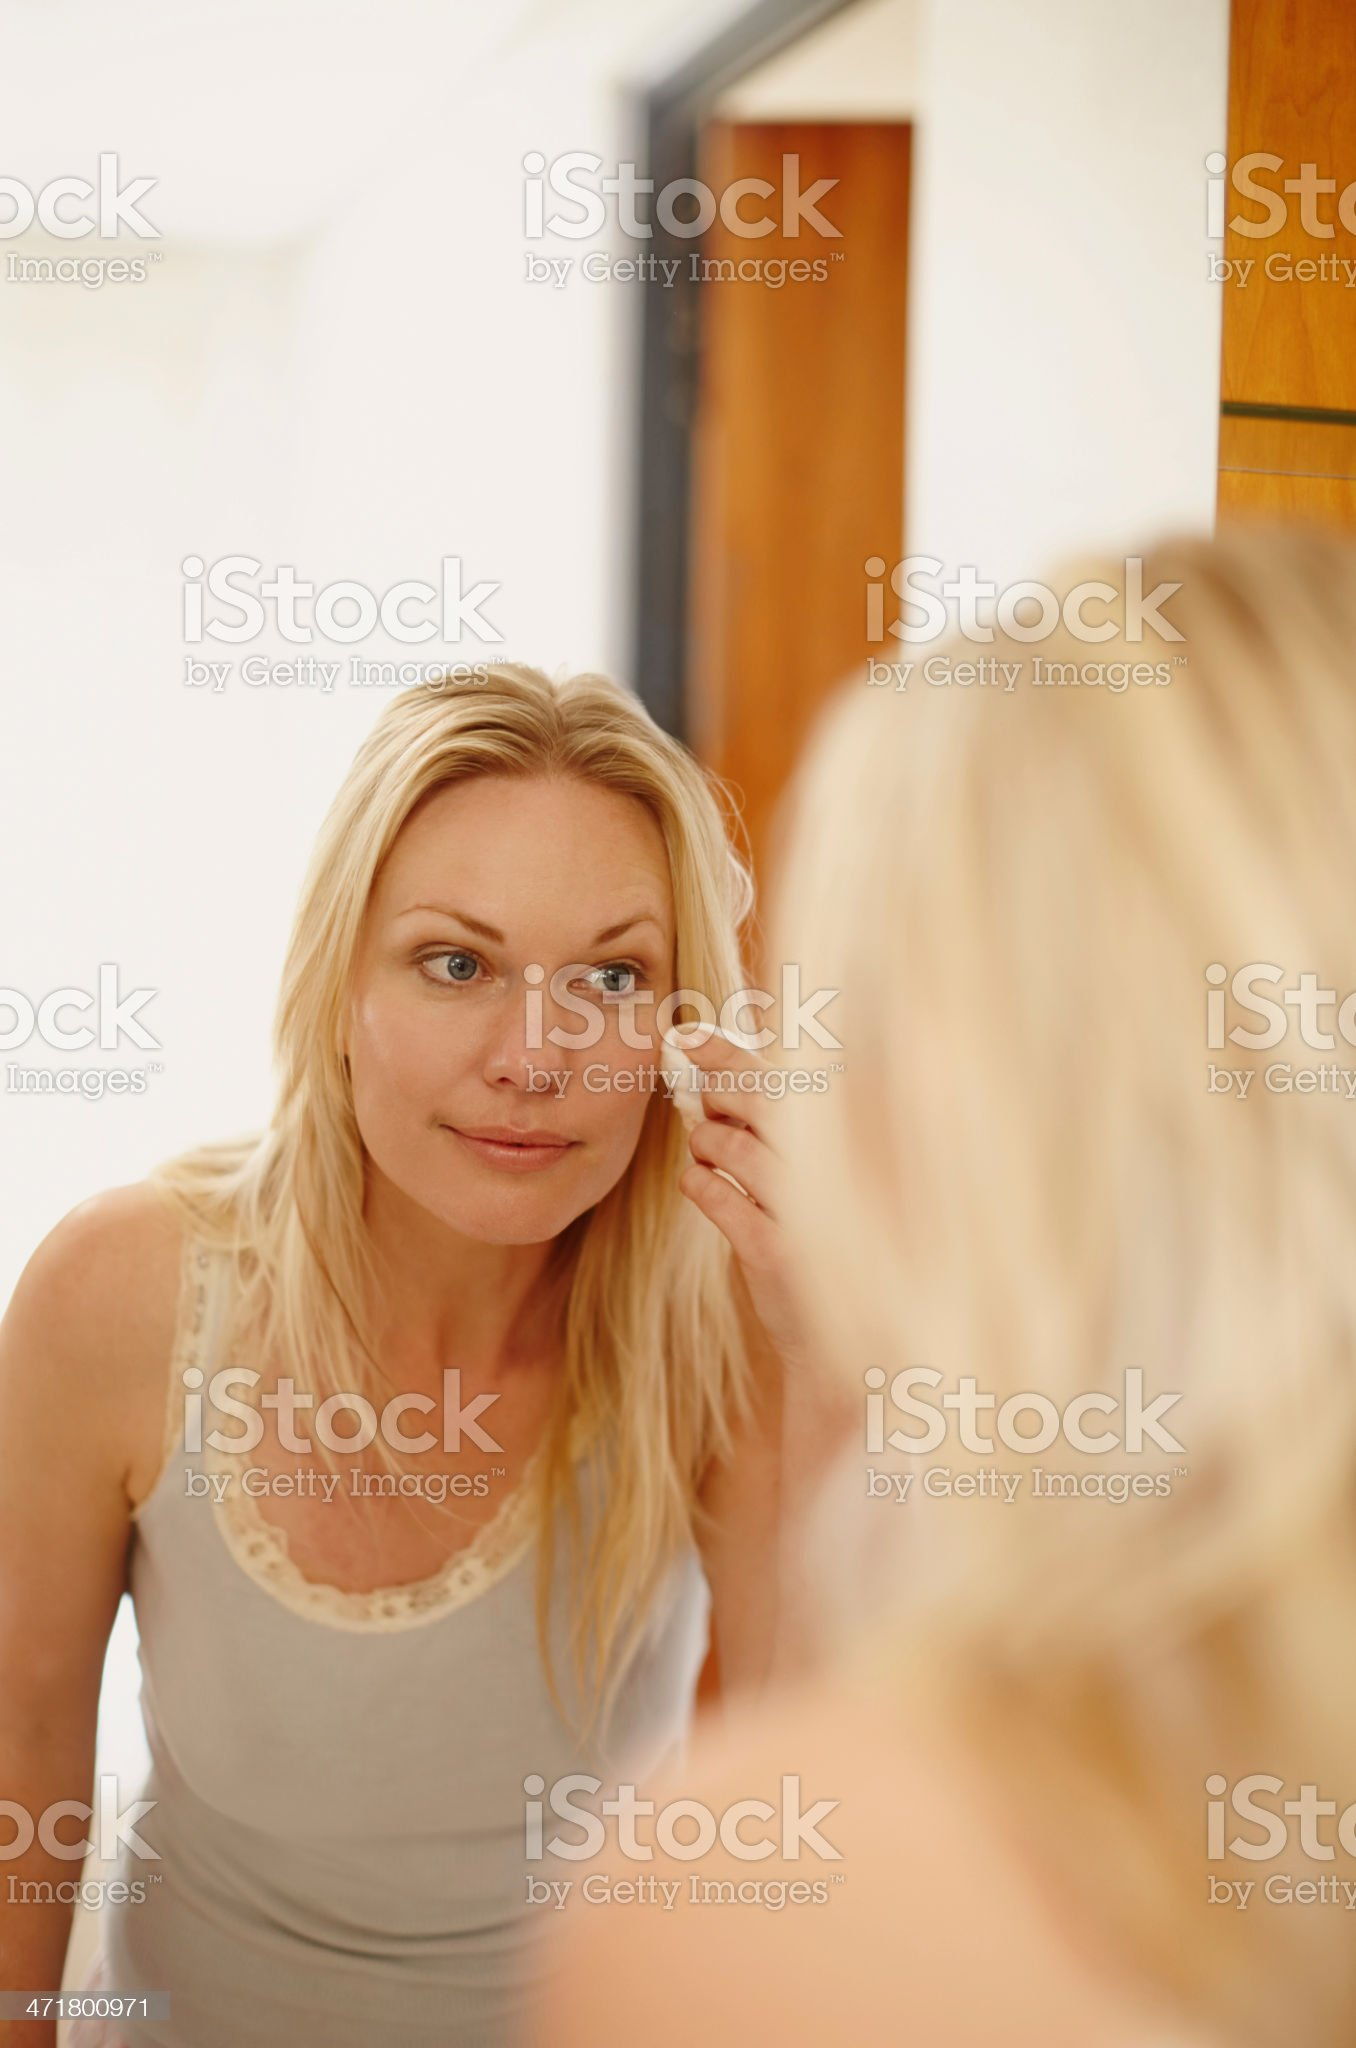 Keeping her skin in great condition royalty-free stock photo